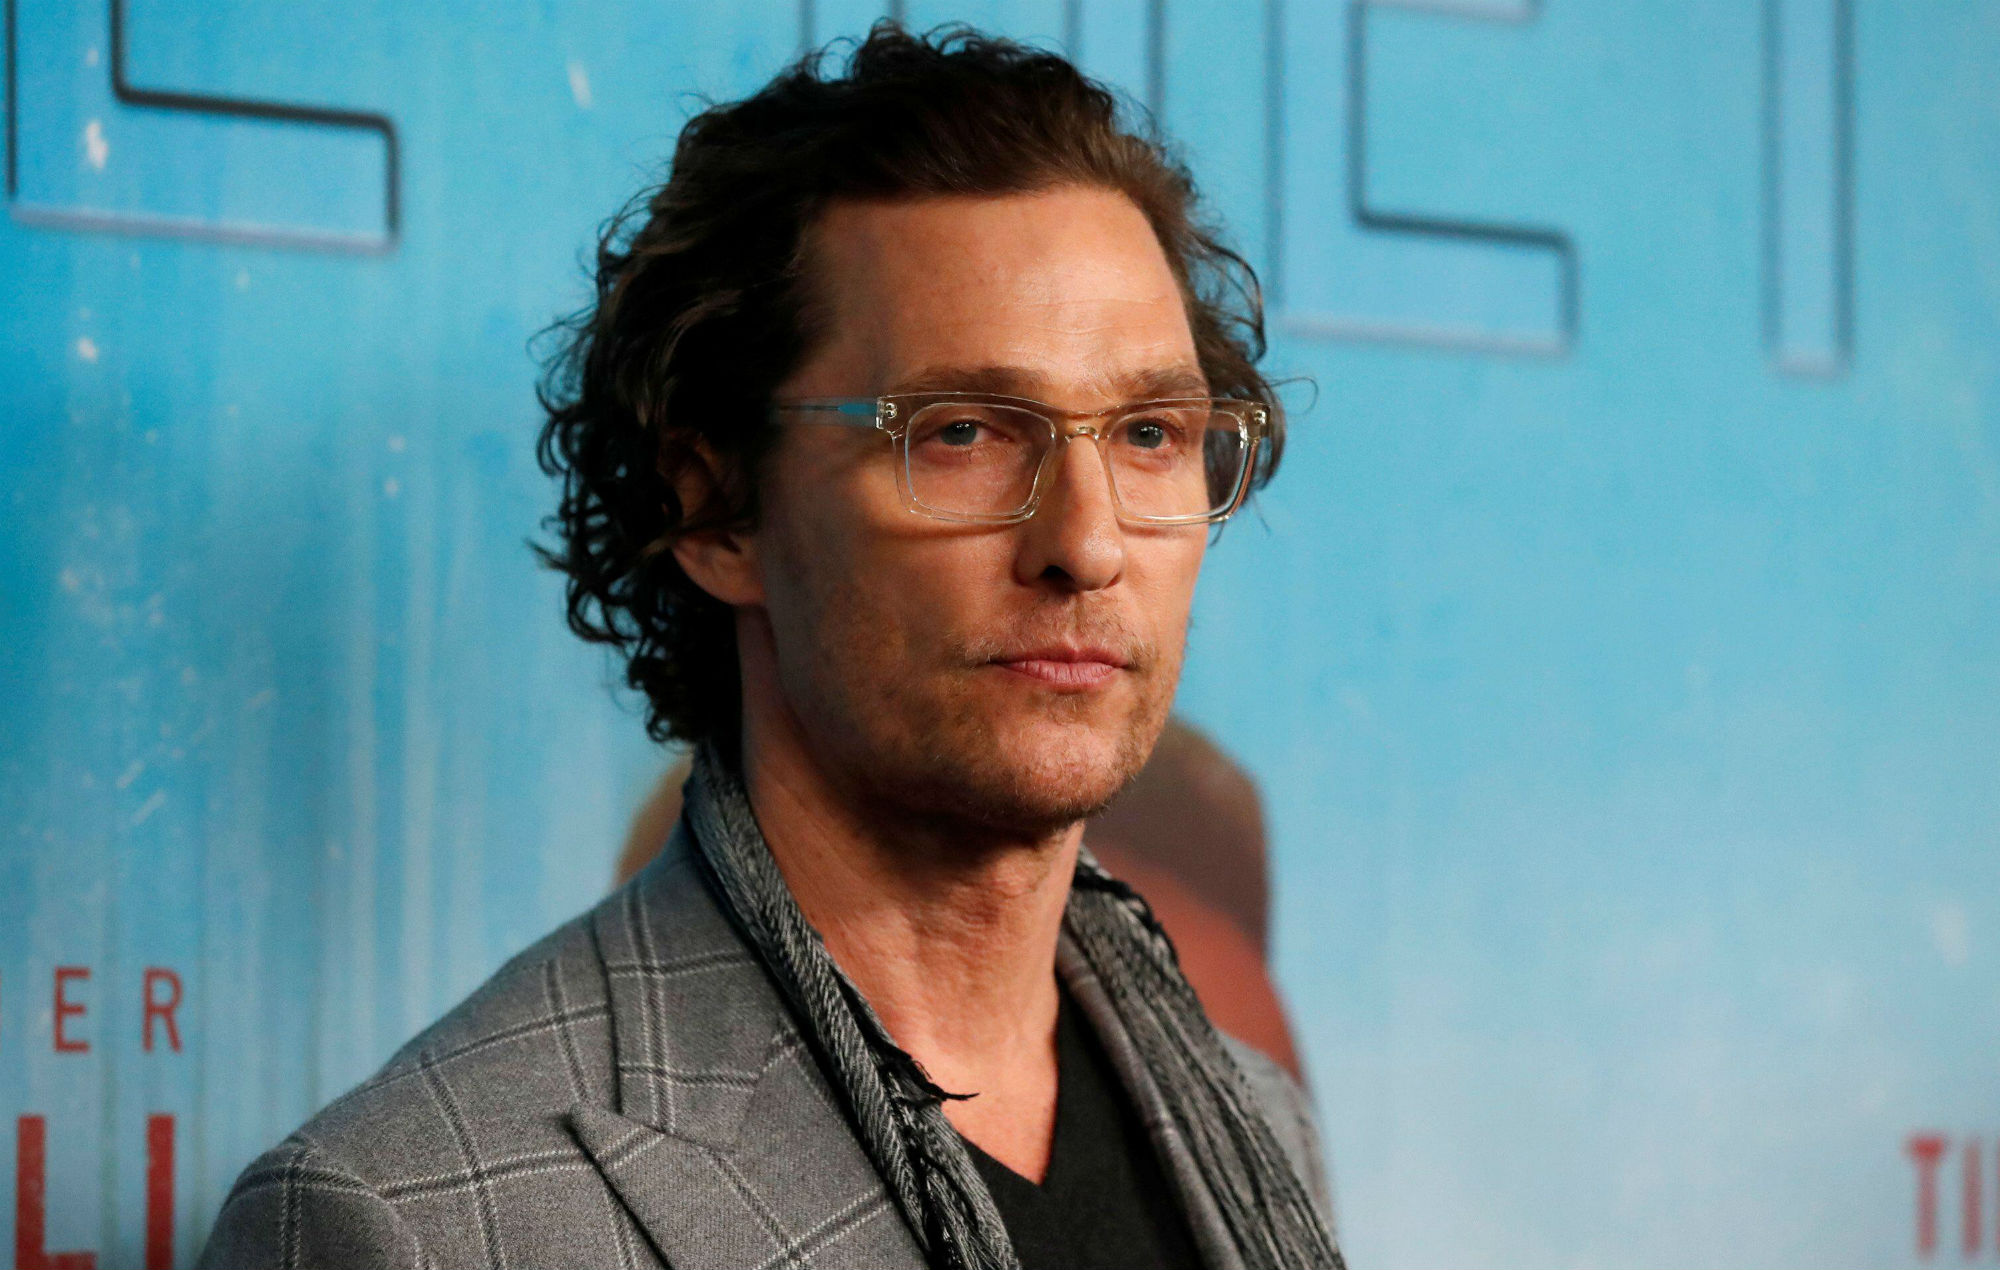 Matthew McConaughey wanted to play the Hulk, but Marvel wasn't interested